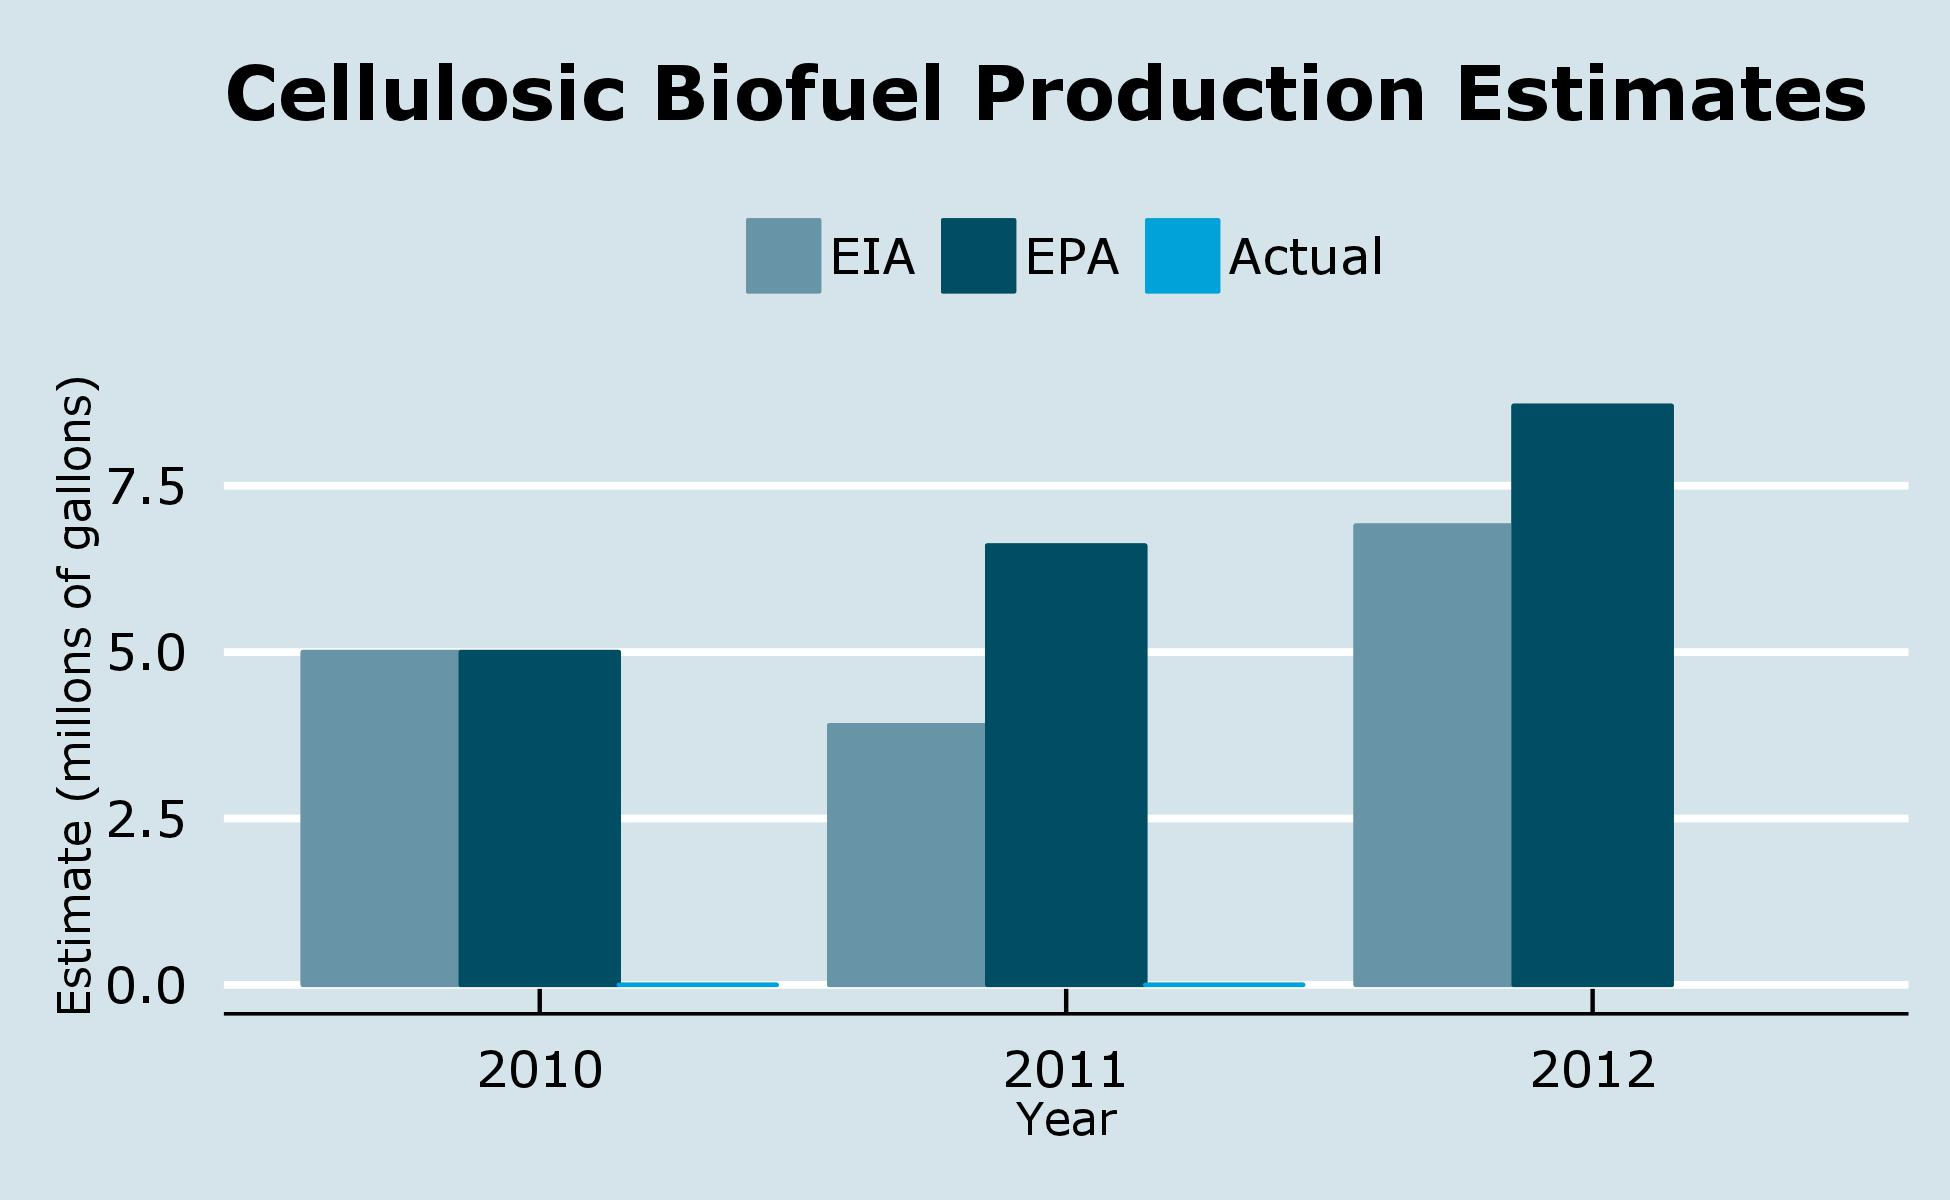 Cellulosic Biofuel Production Estimates